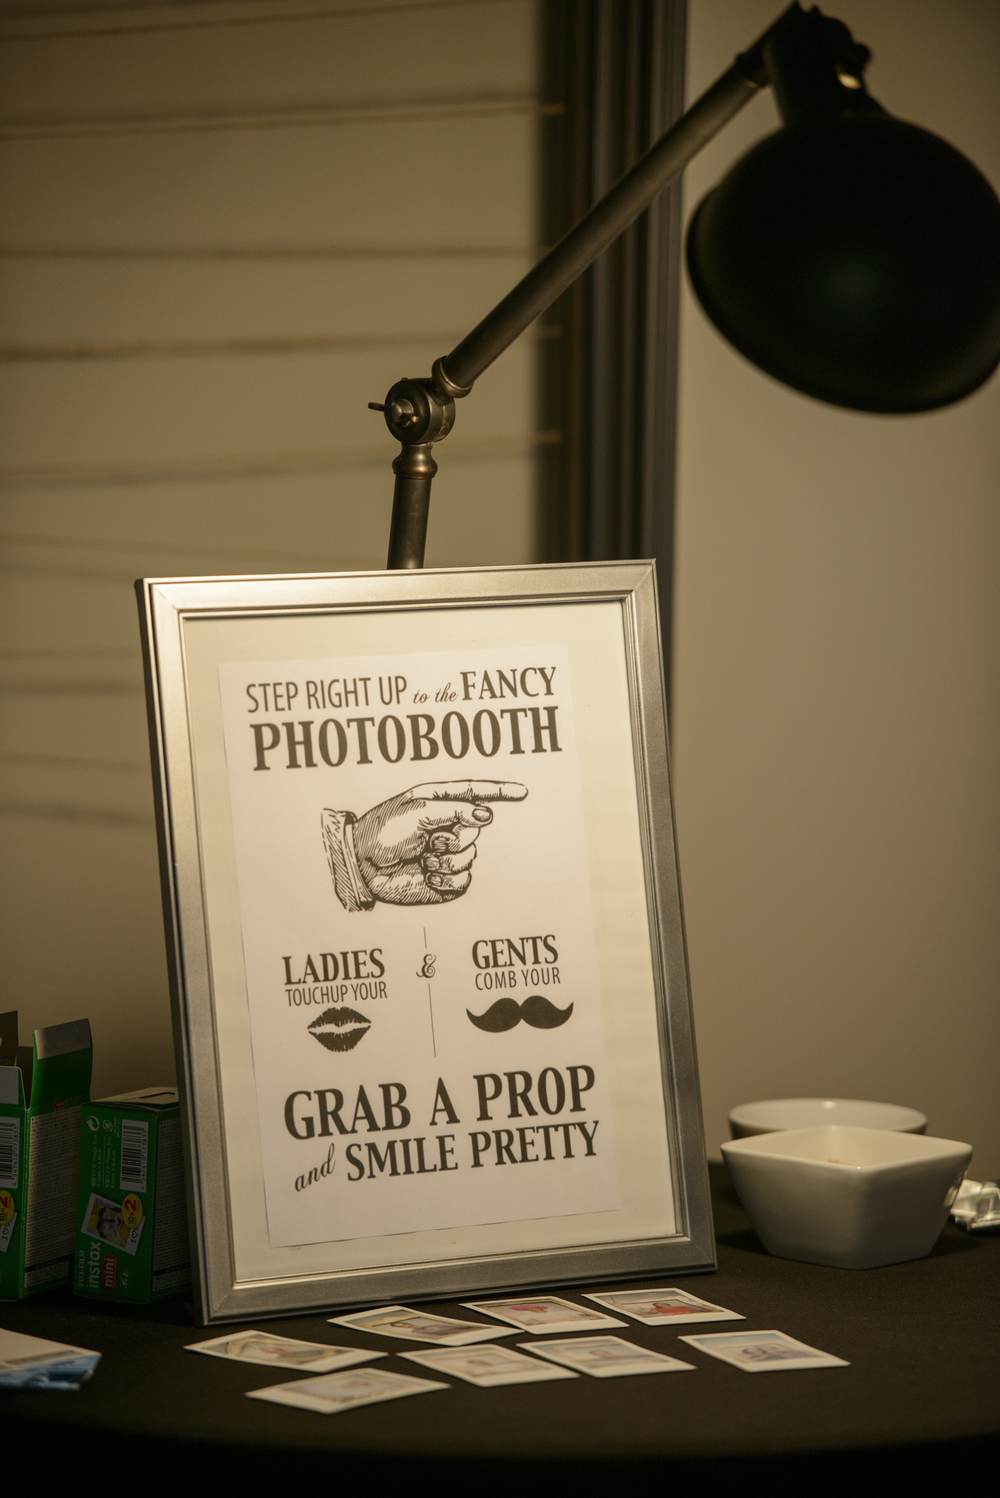 Our photo-booth (with Polaroid camera) was a great success.